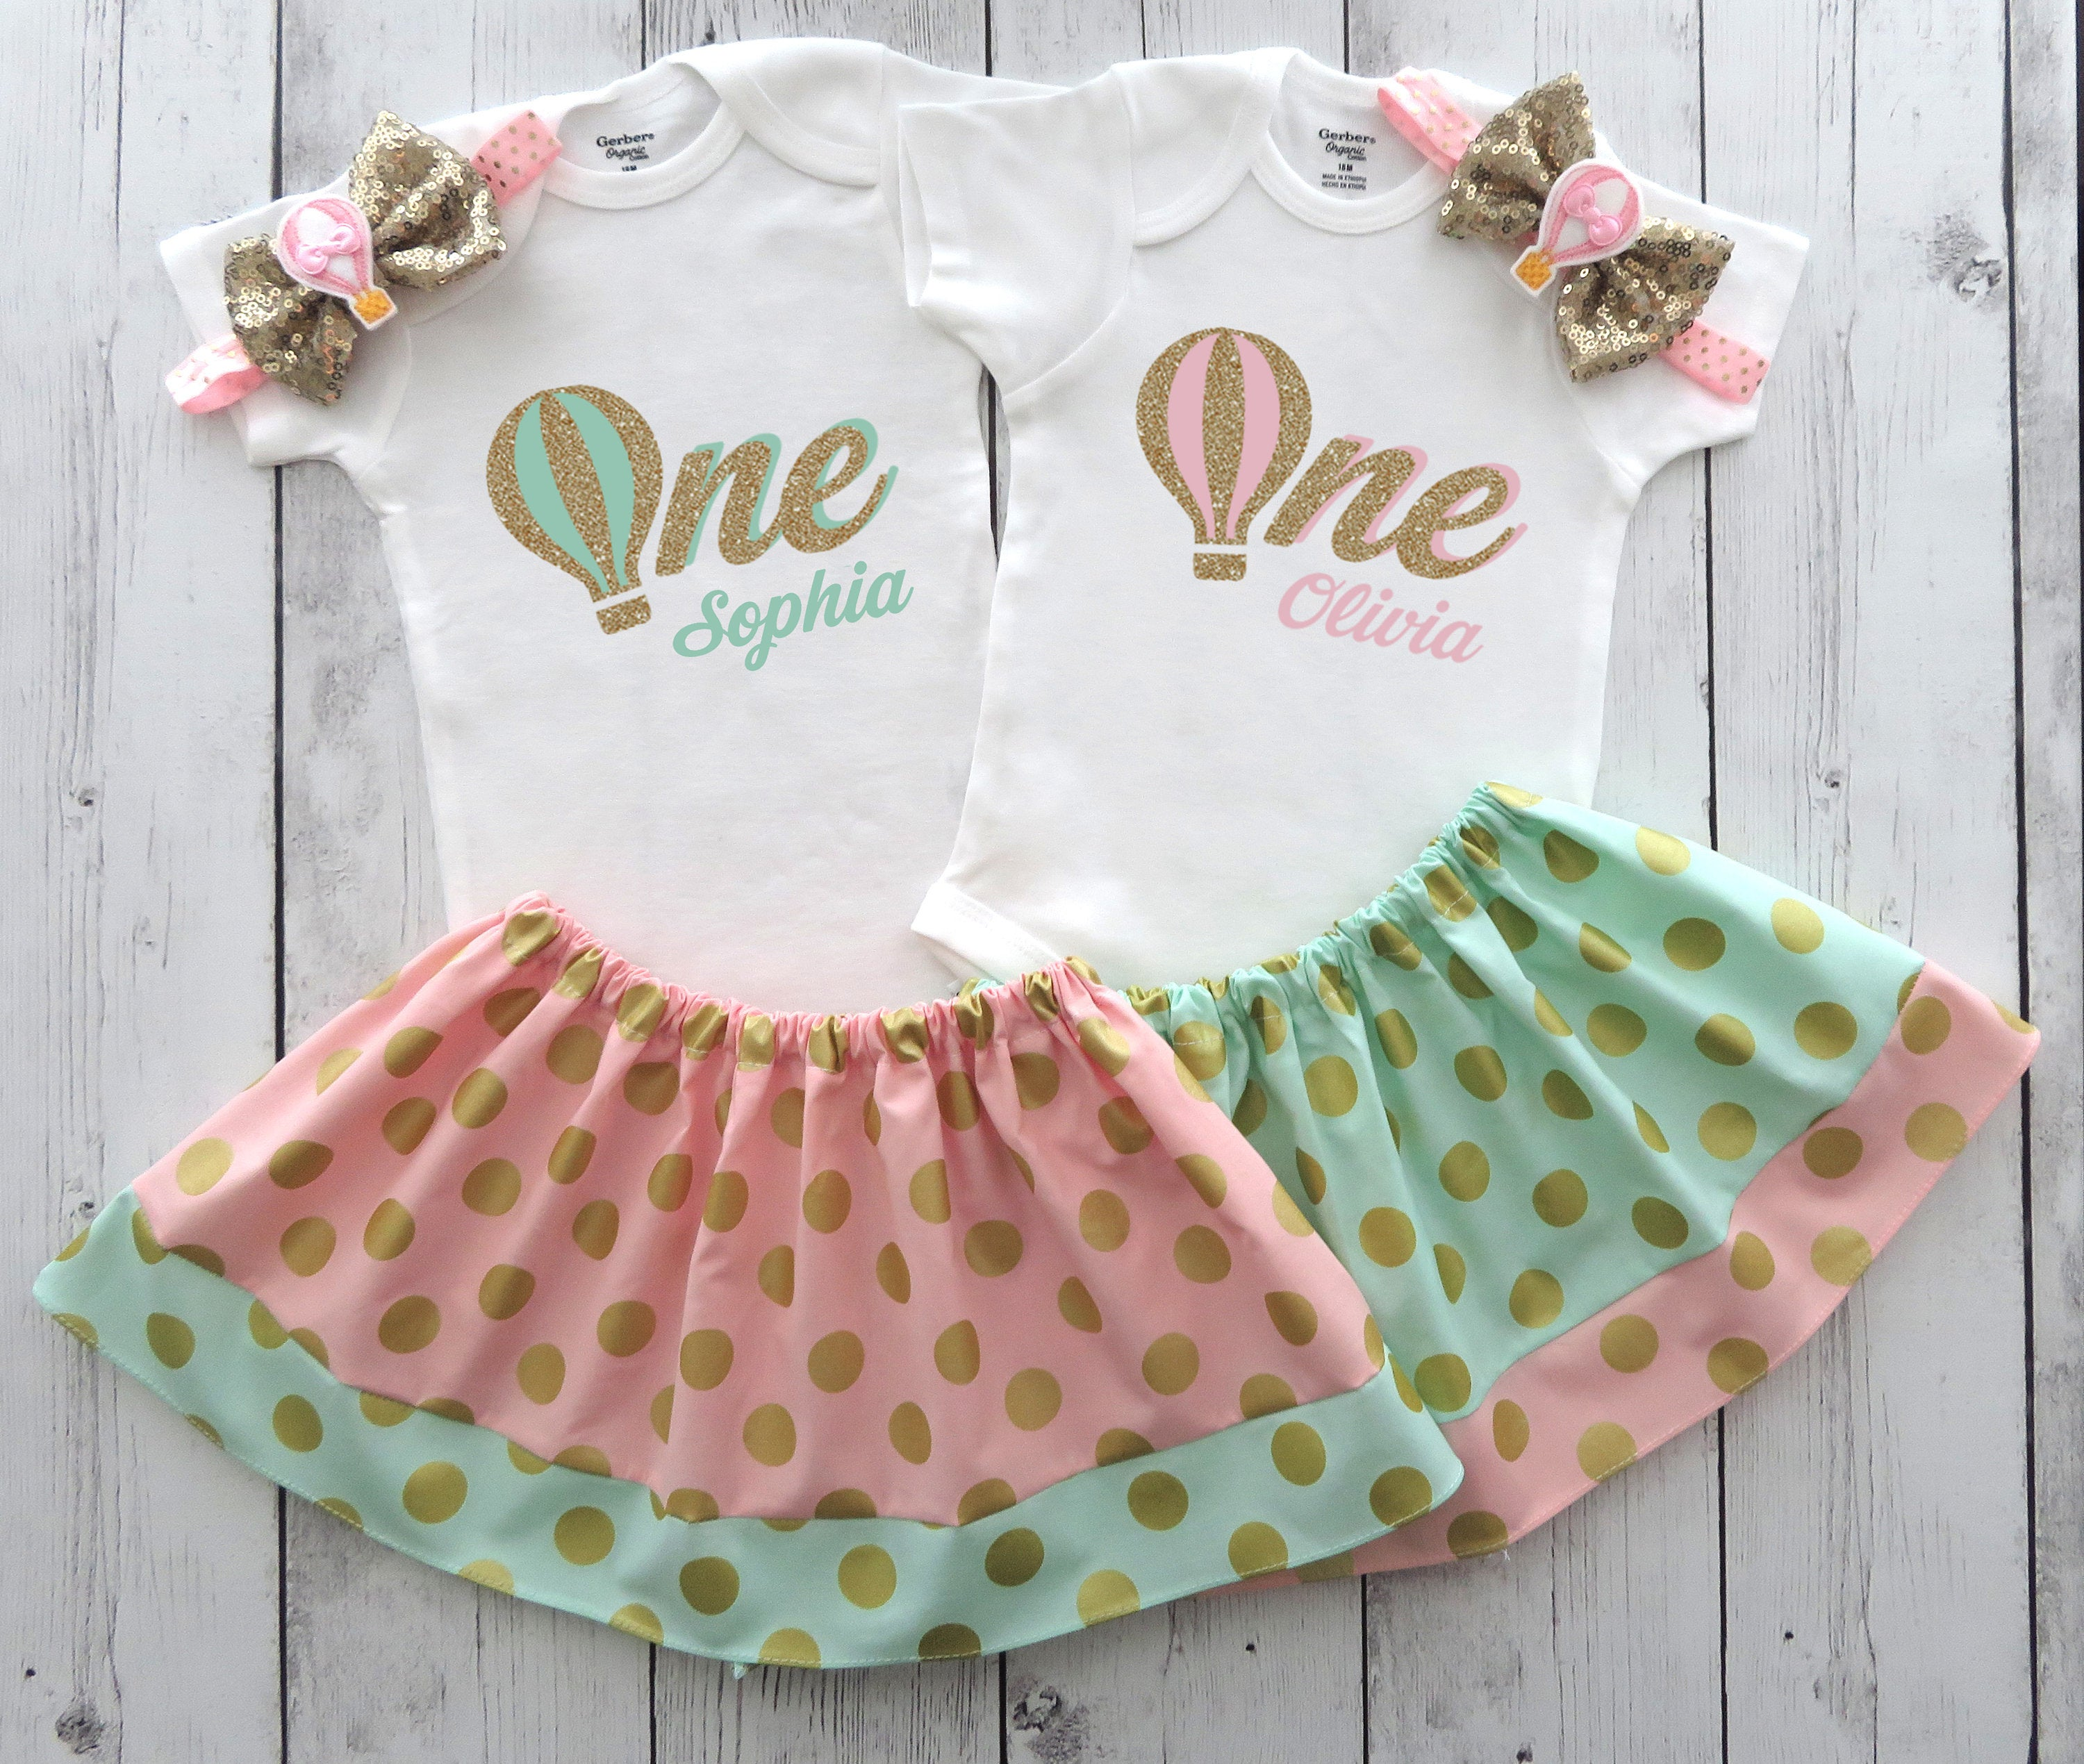 Twins First Birthday Outfits in Hot Air Balloon Theme - mint pink and gold, twins birthday outfits, cake smash, hot air balloon twins